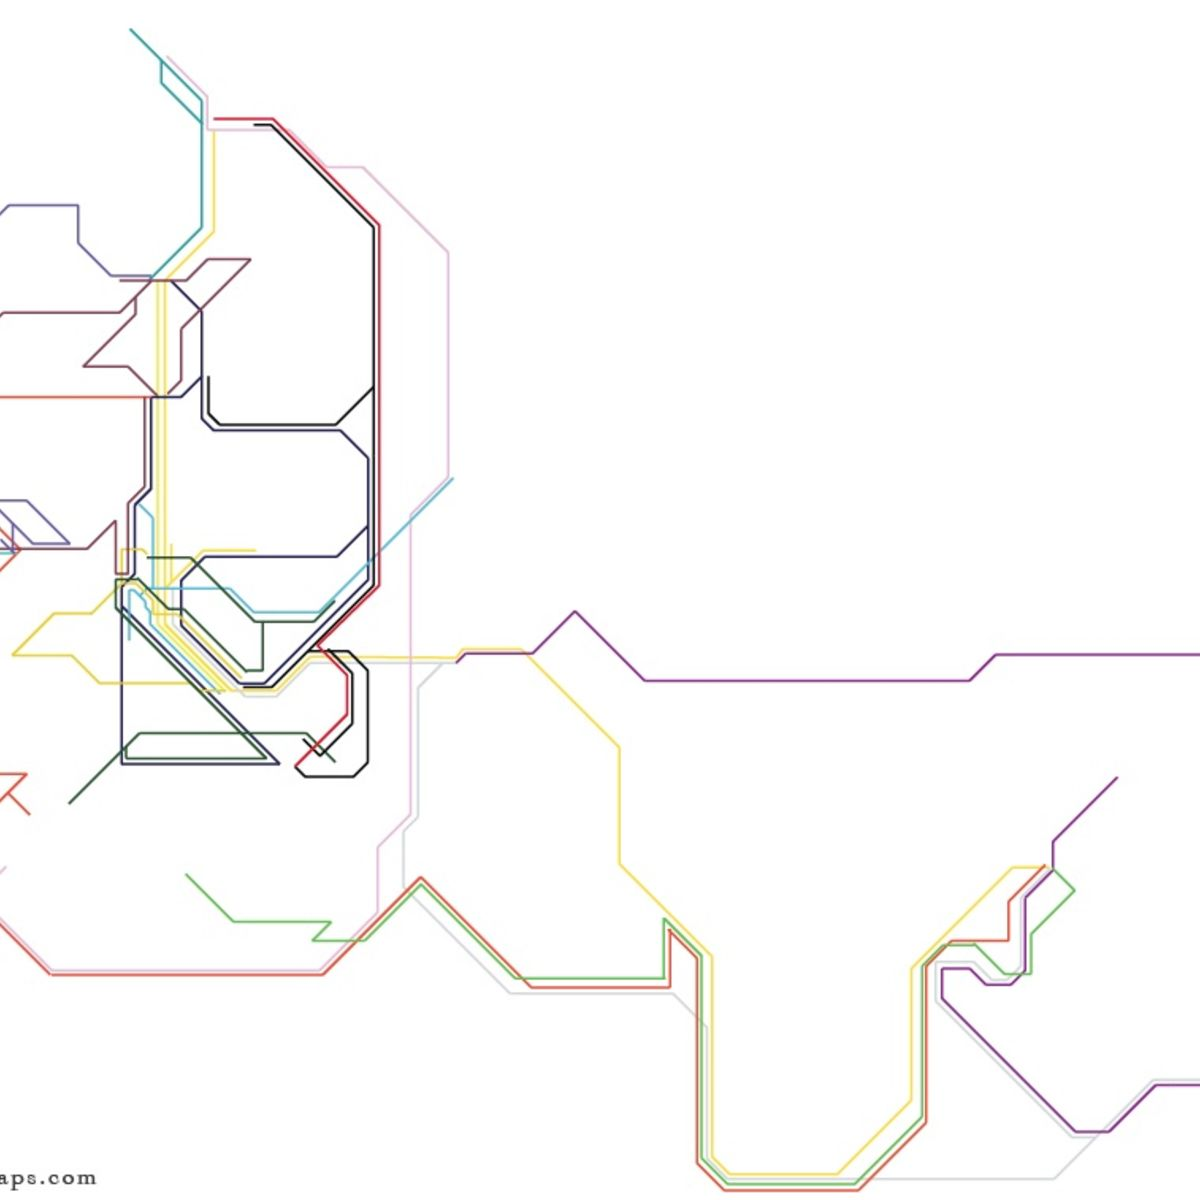 Game-of-Thrones-as-subway-system.jpg